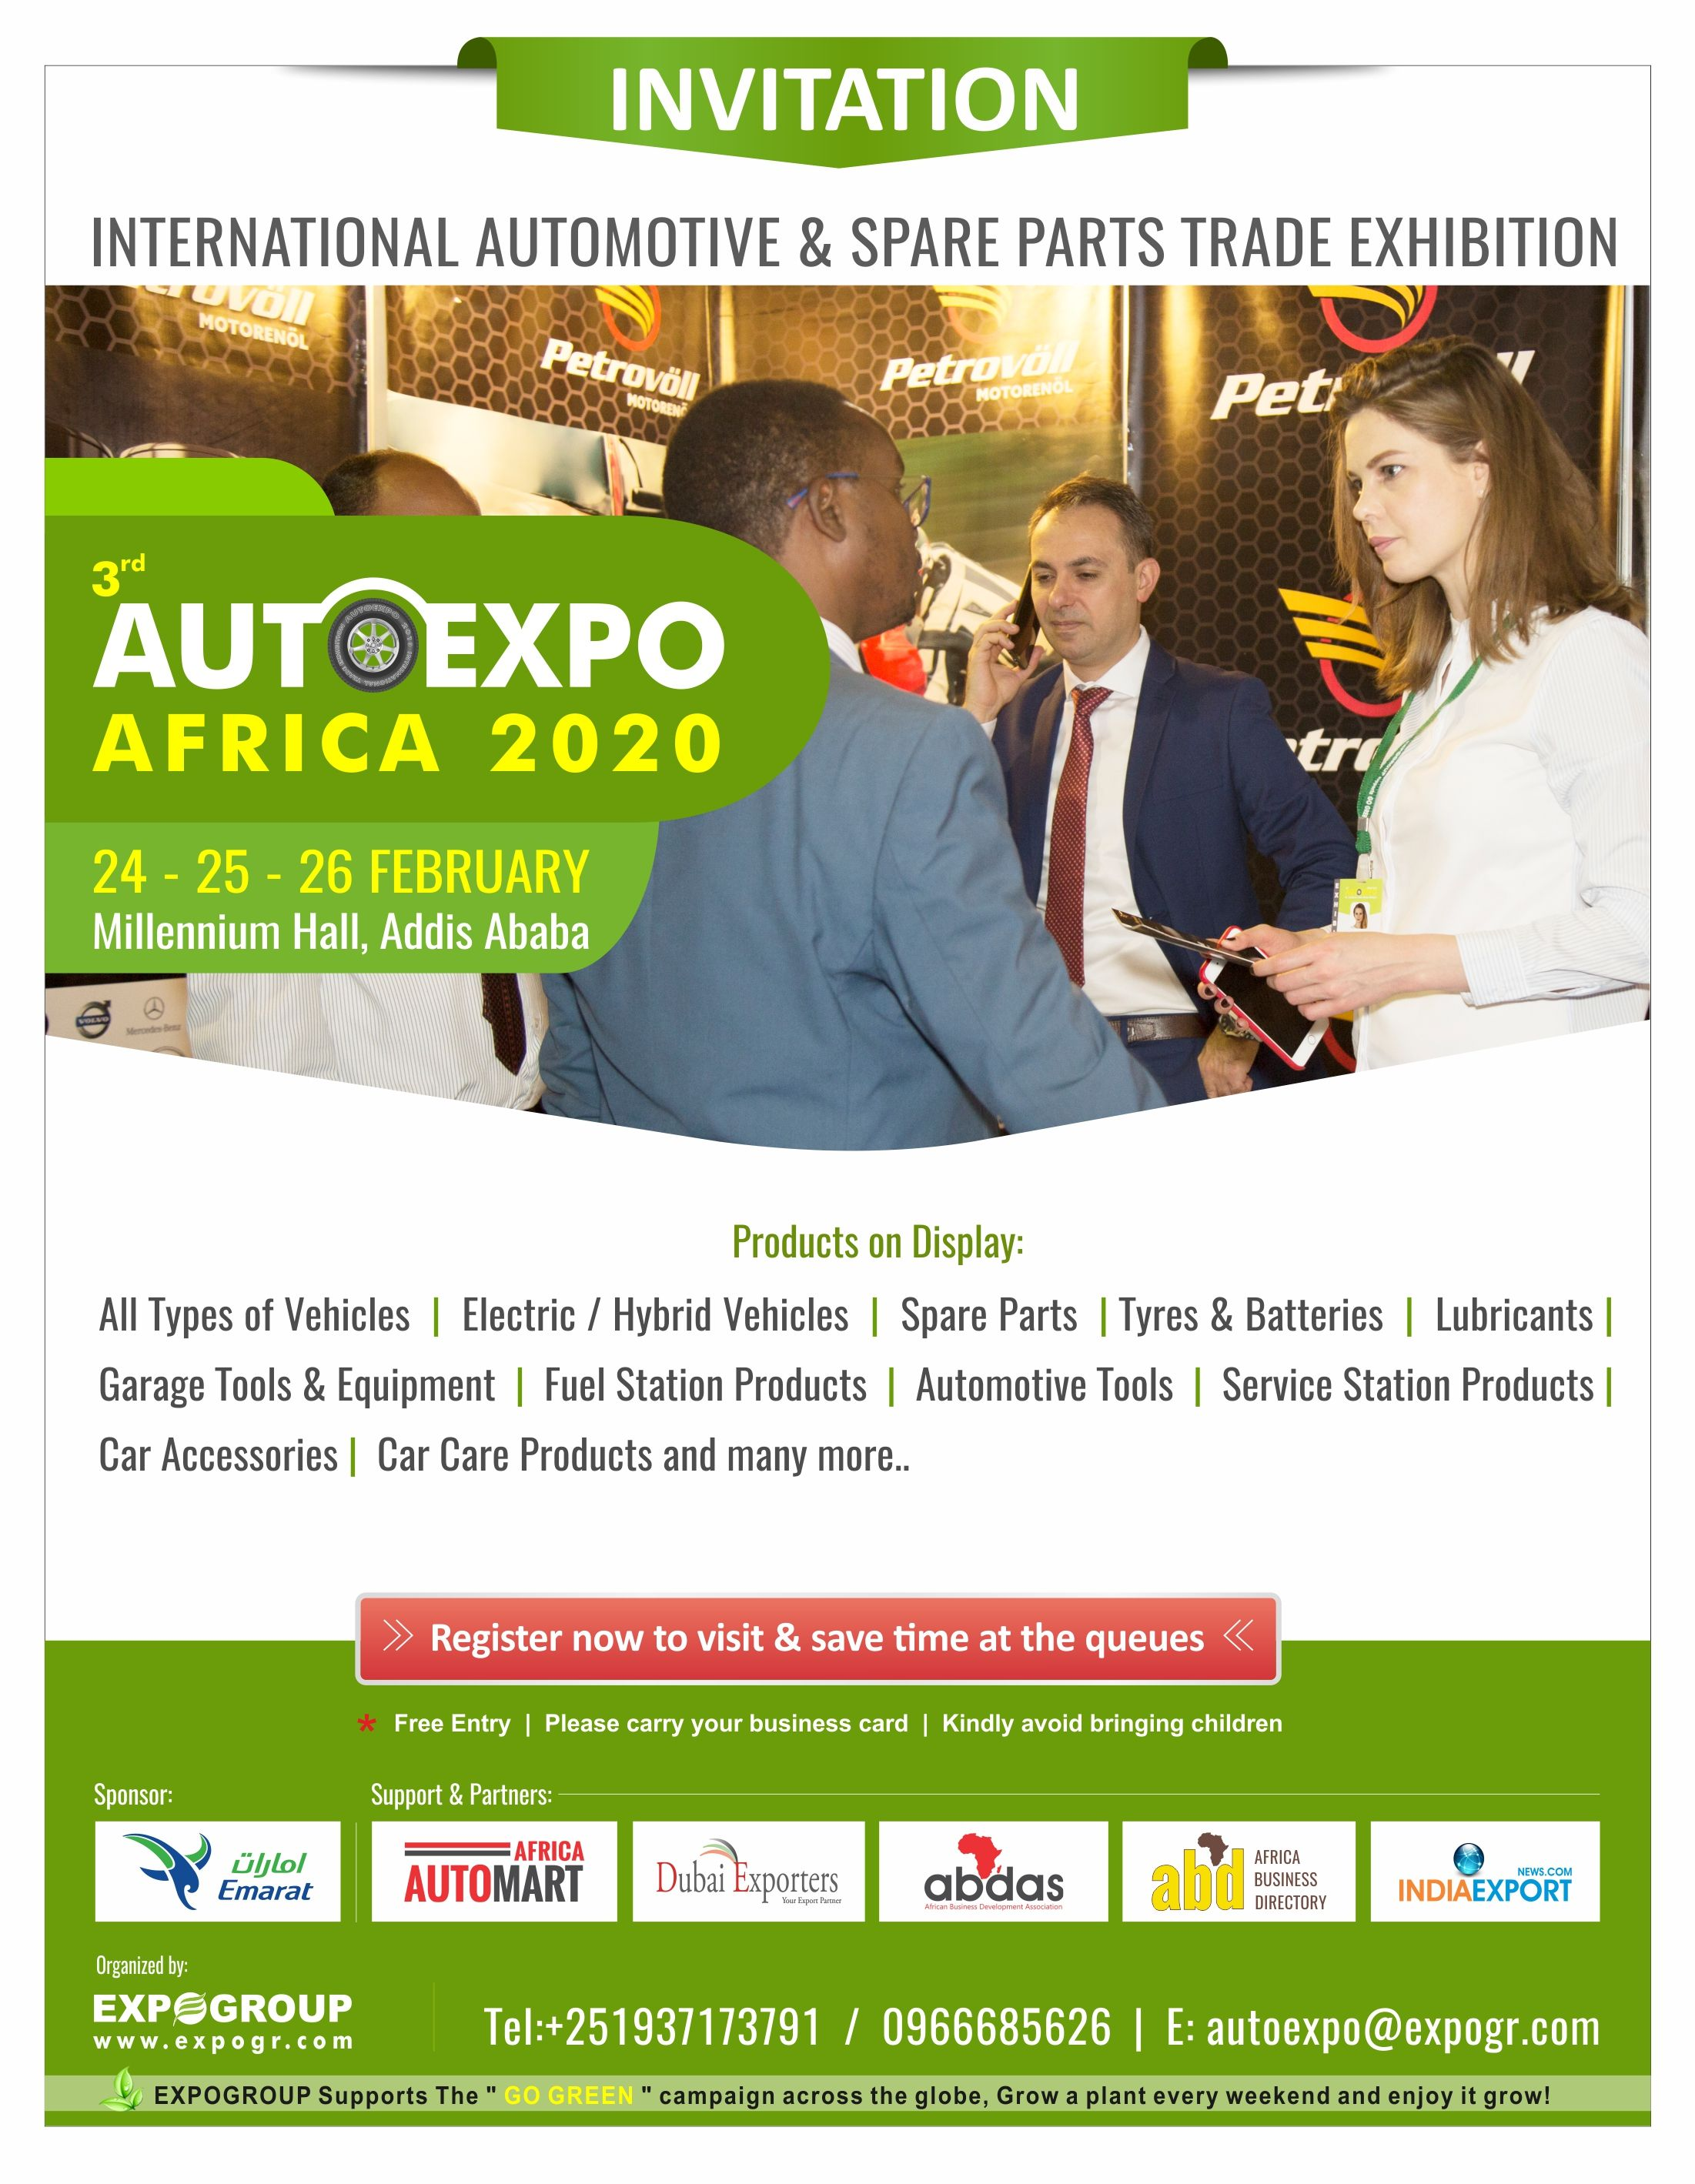 AUTOEXPO ETHIOPIA 2020 INVITATION Autoexpo Ethiopia 2020 is the right place to source the latest innovations  technologies in all types of Personal and Commercial Tools...